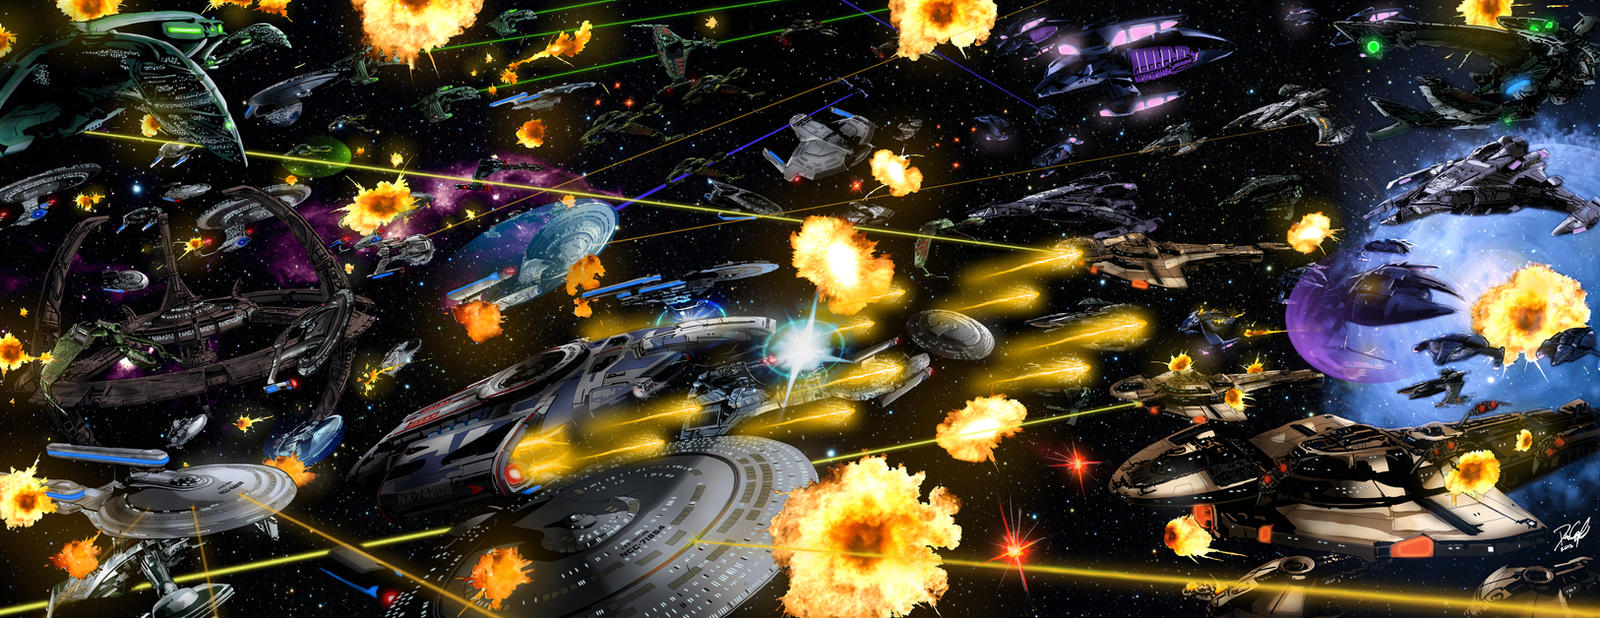 The Battle for Deep Space 9 Final by danecypel